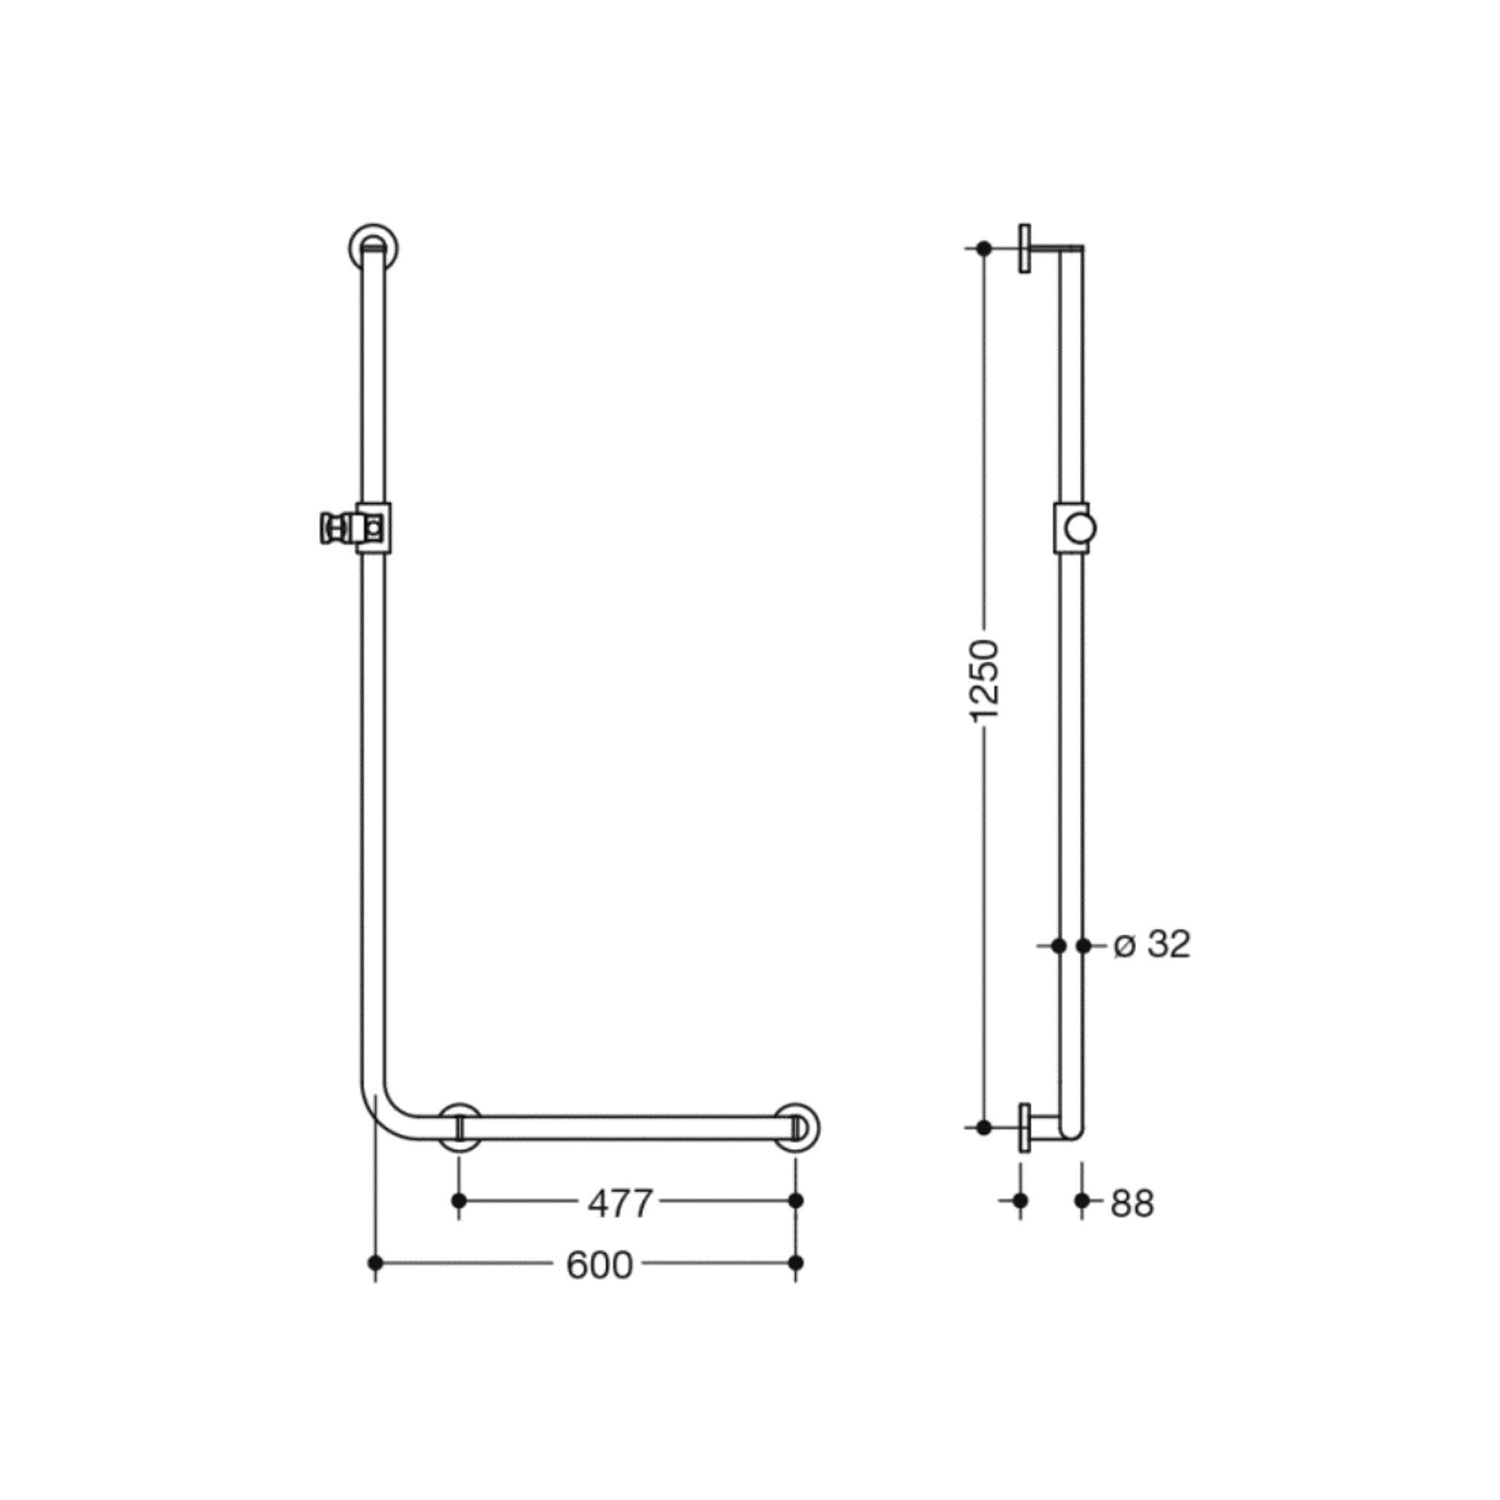 1250x600mm Right Handed Freestyle Supportive L Shaped Shower Rail with a satin steel finish dimensional drawing